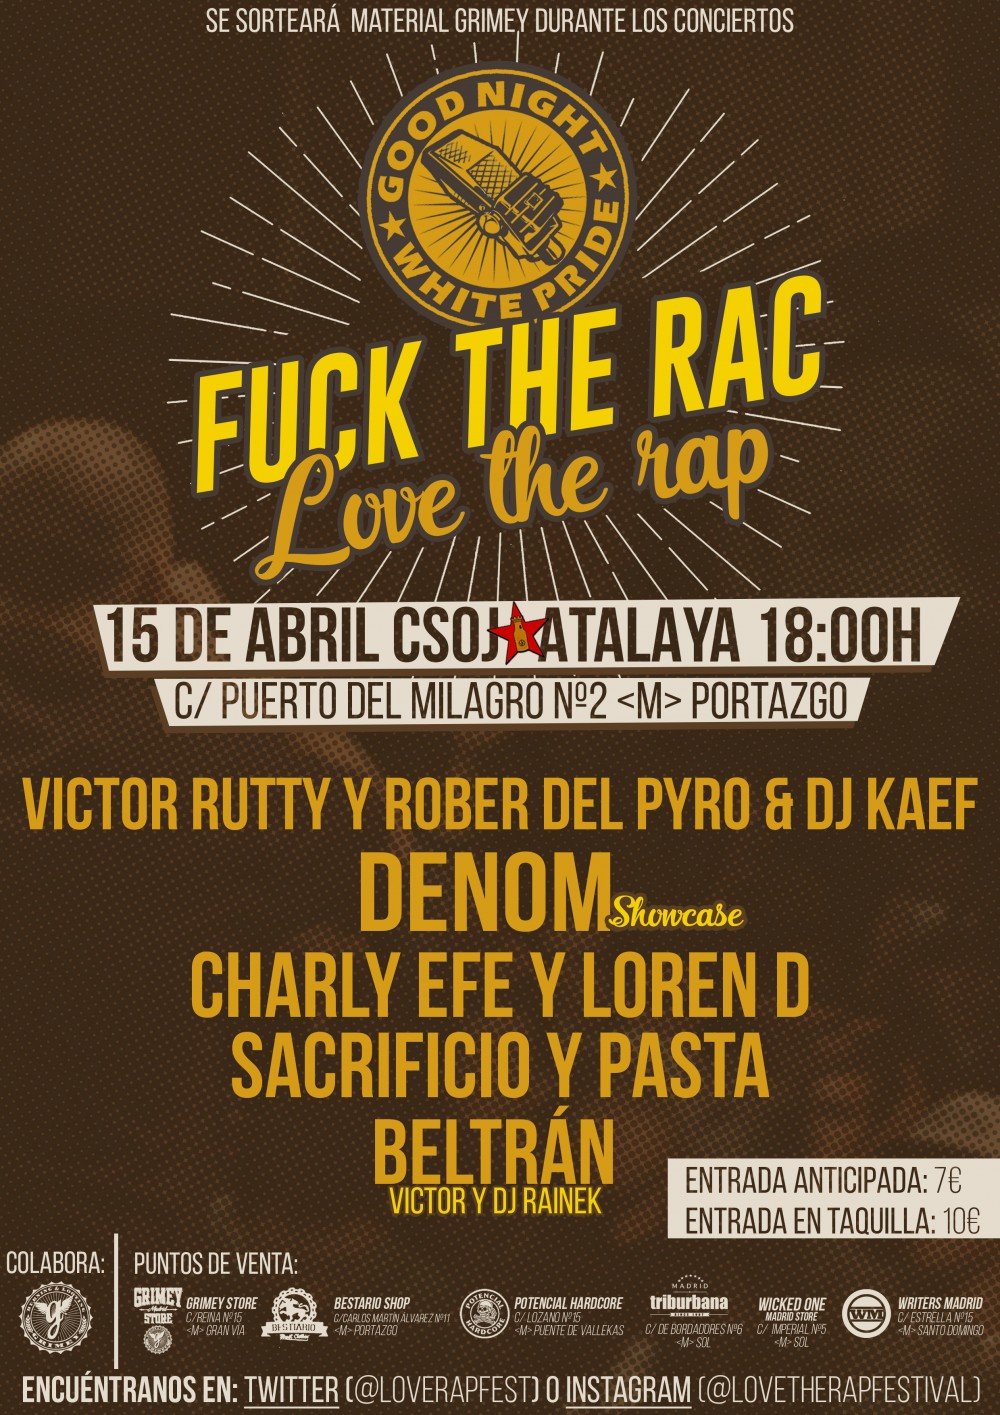 Fuck-the-rac-Love-the-rap-en-Madrid-8095